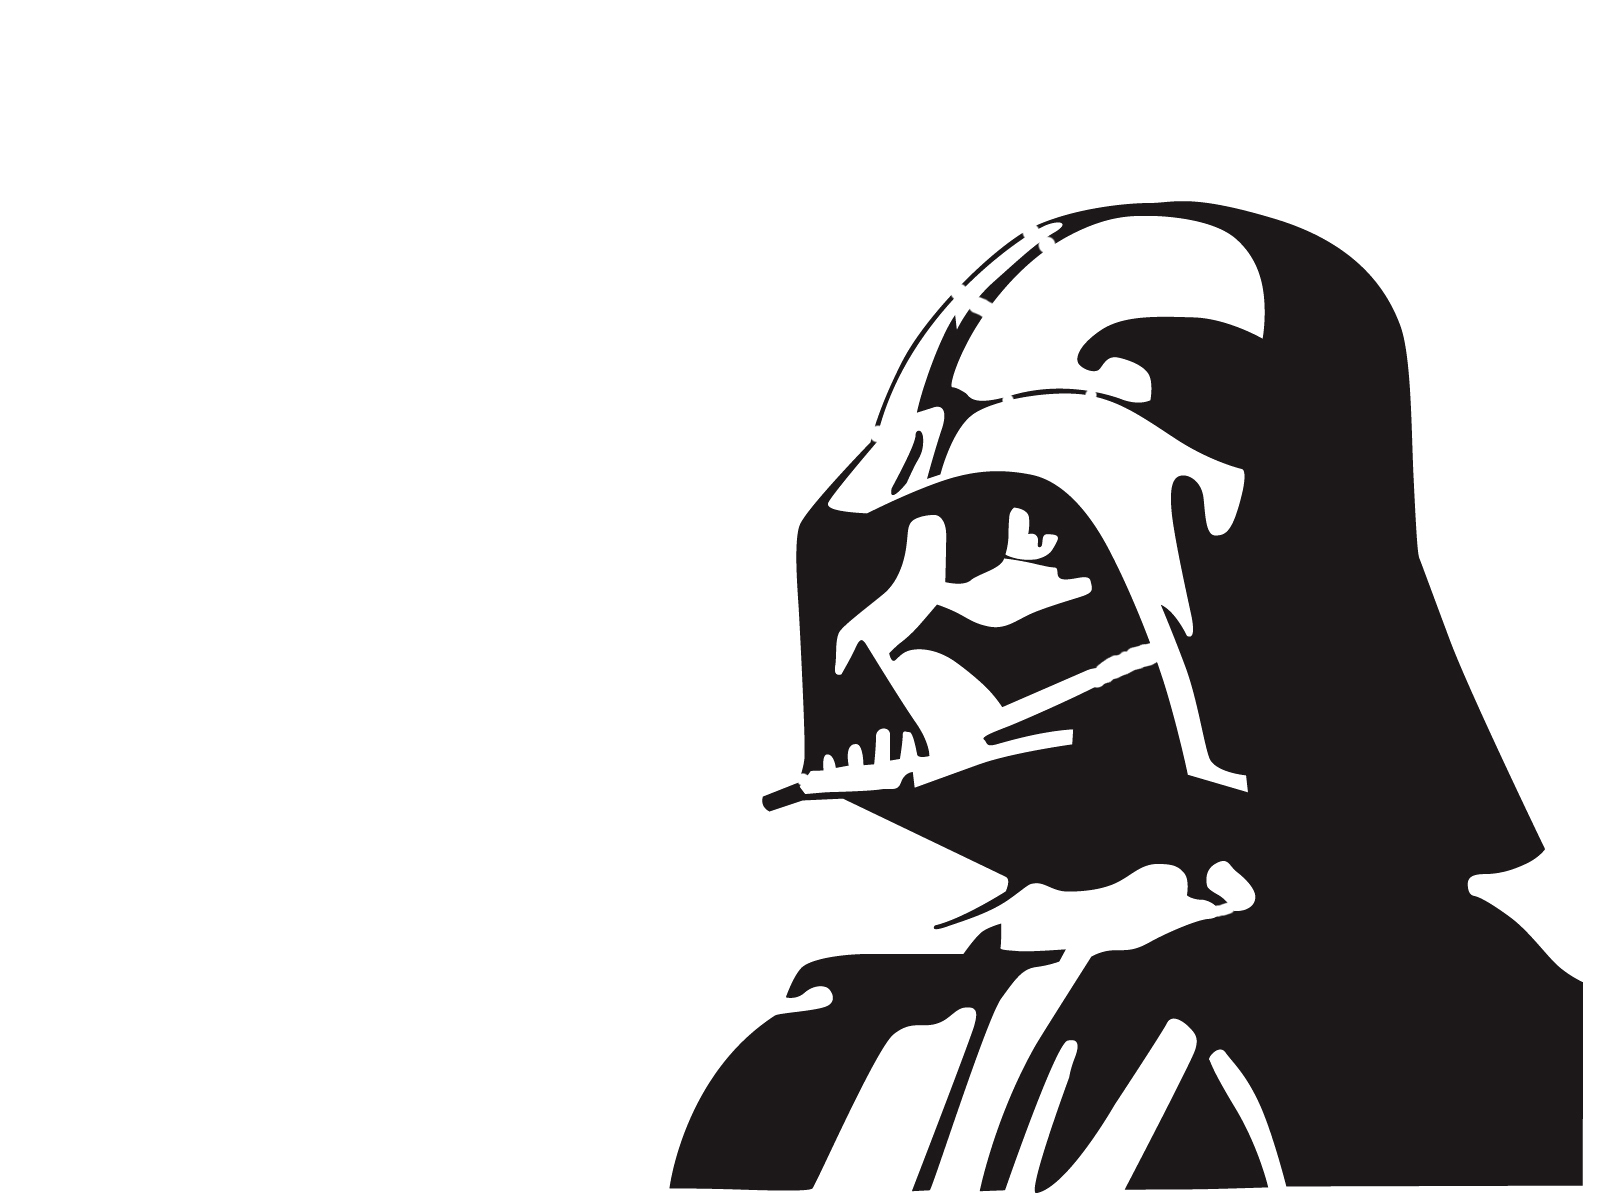 darth vader by graffitiwatcher on deviantart darth vader clip art png darth vader clip art black and white